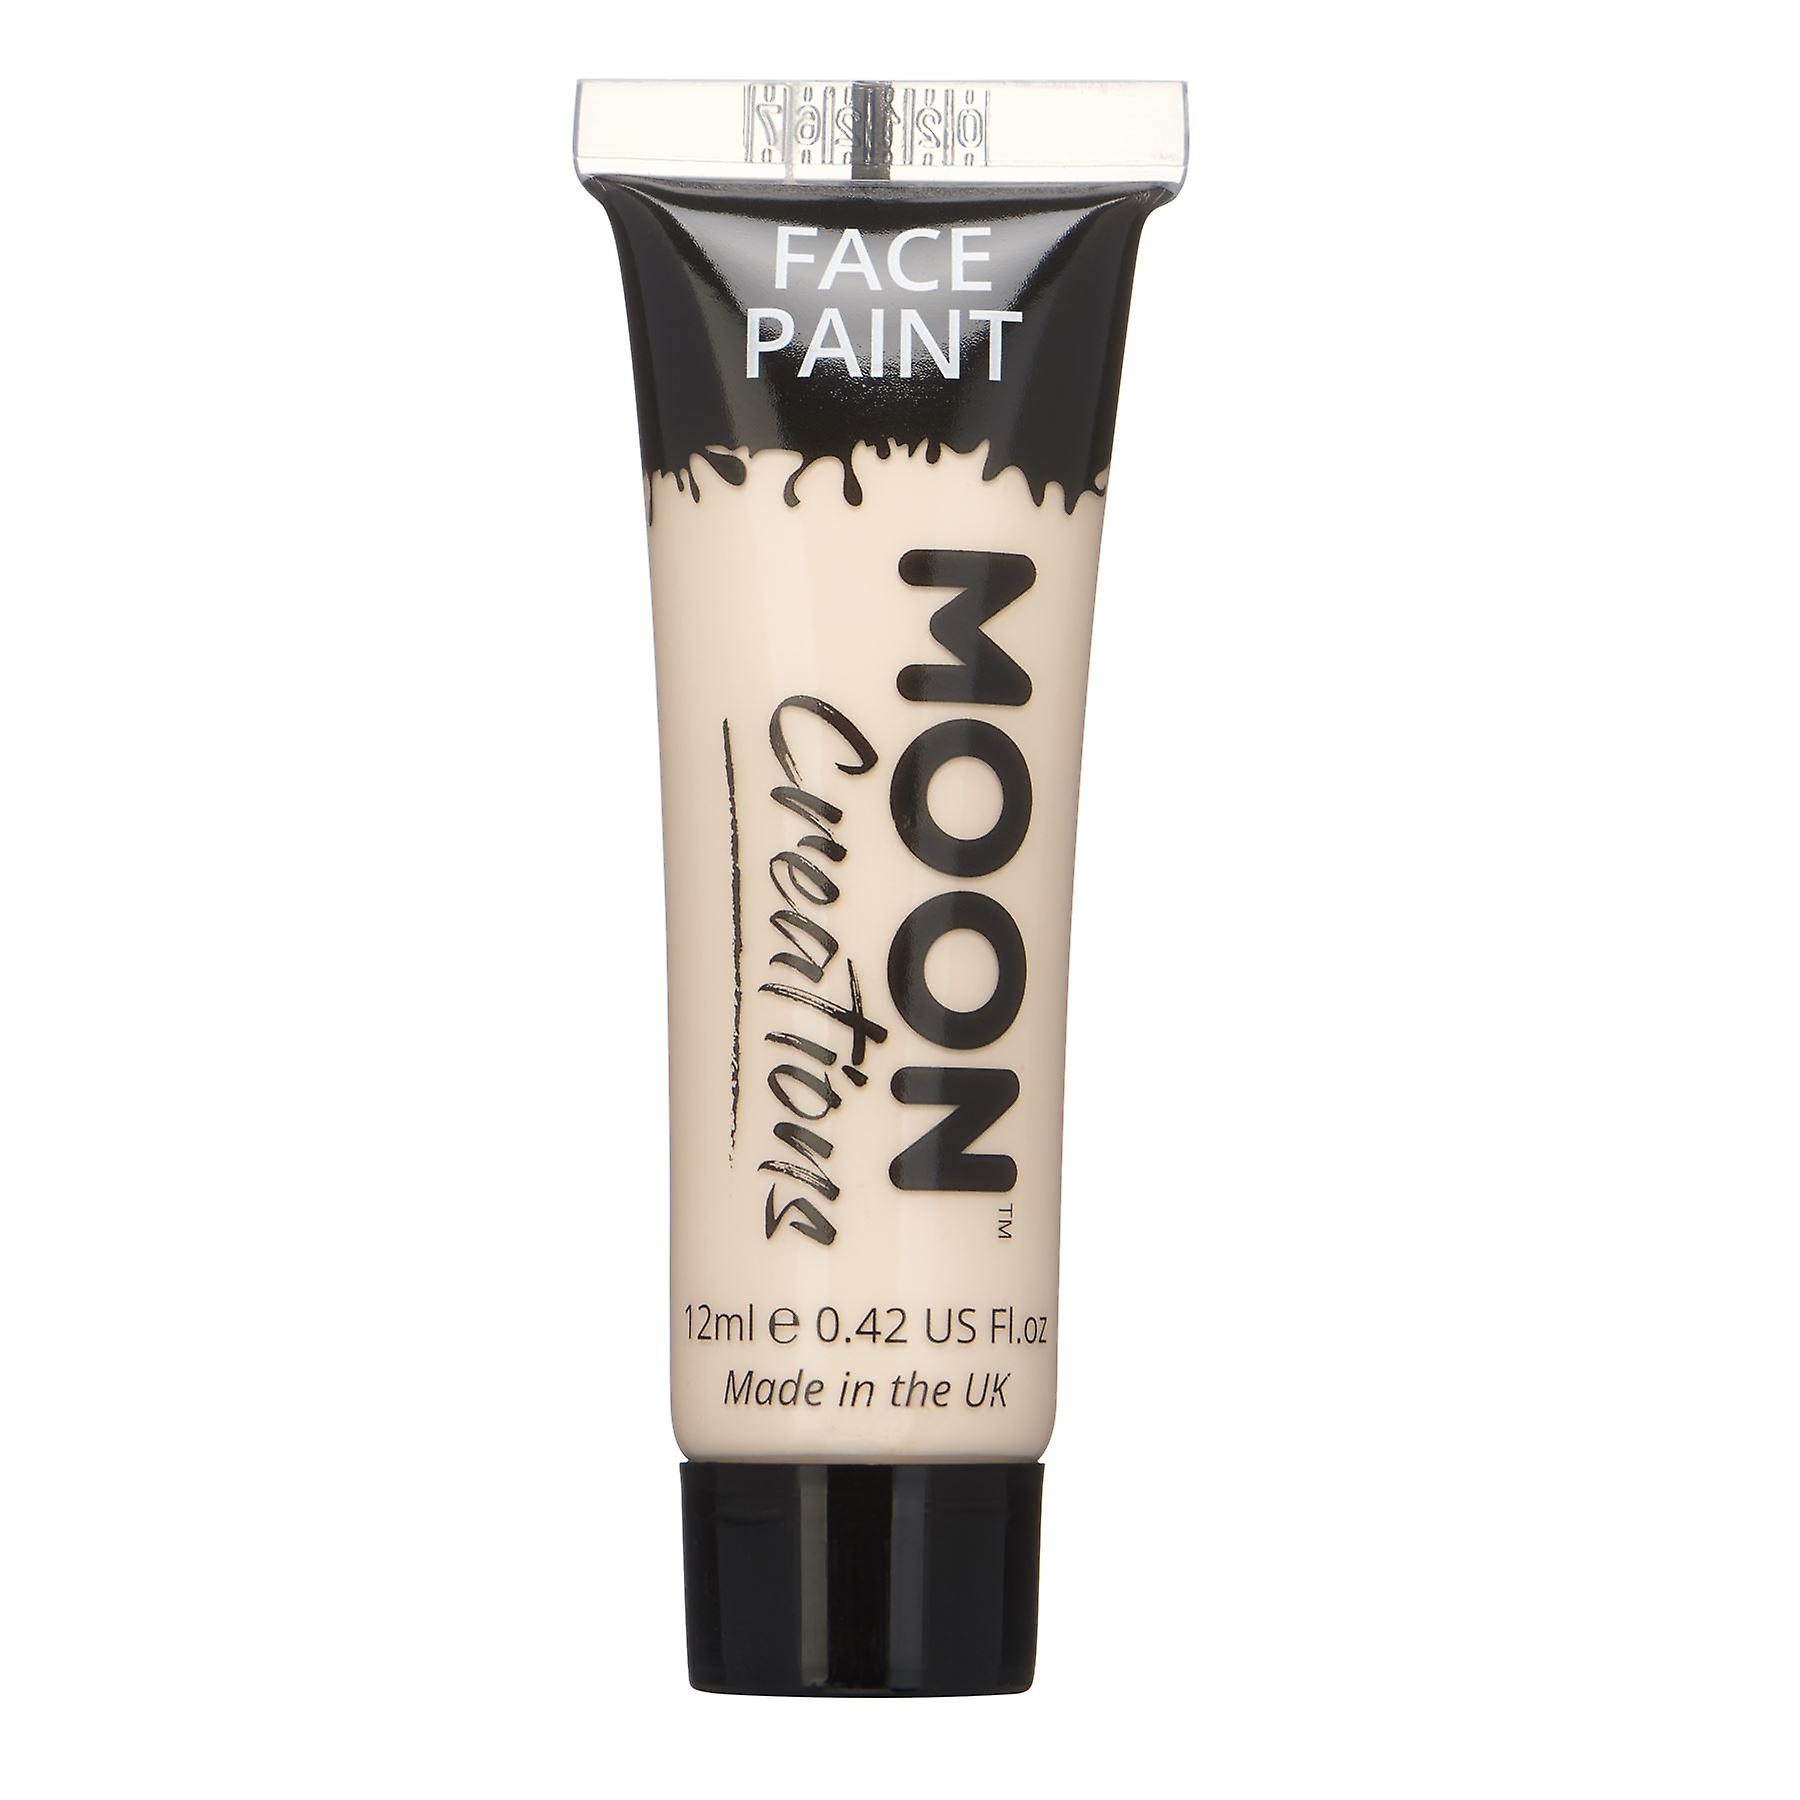 Face & Body Paint by Moon Creations - 12ml - Pale Skin